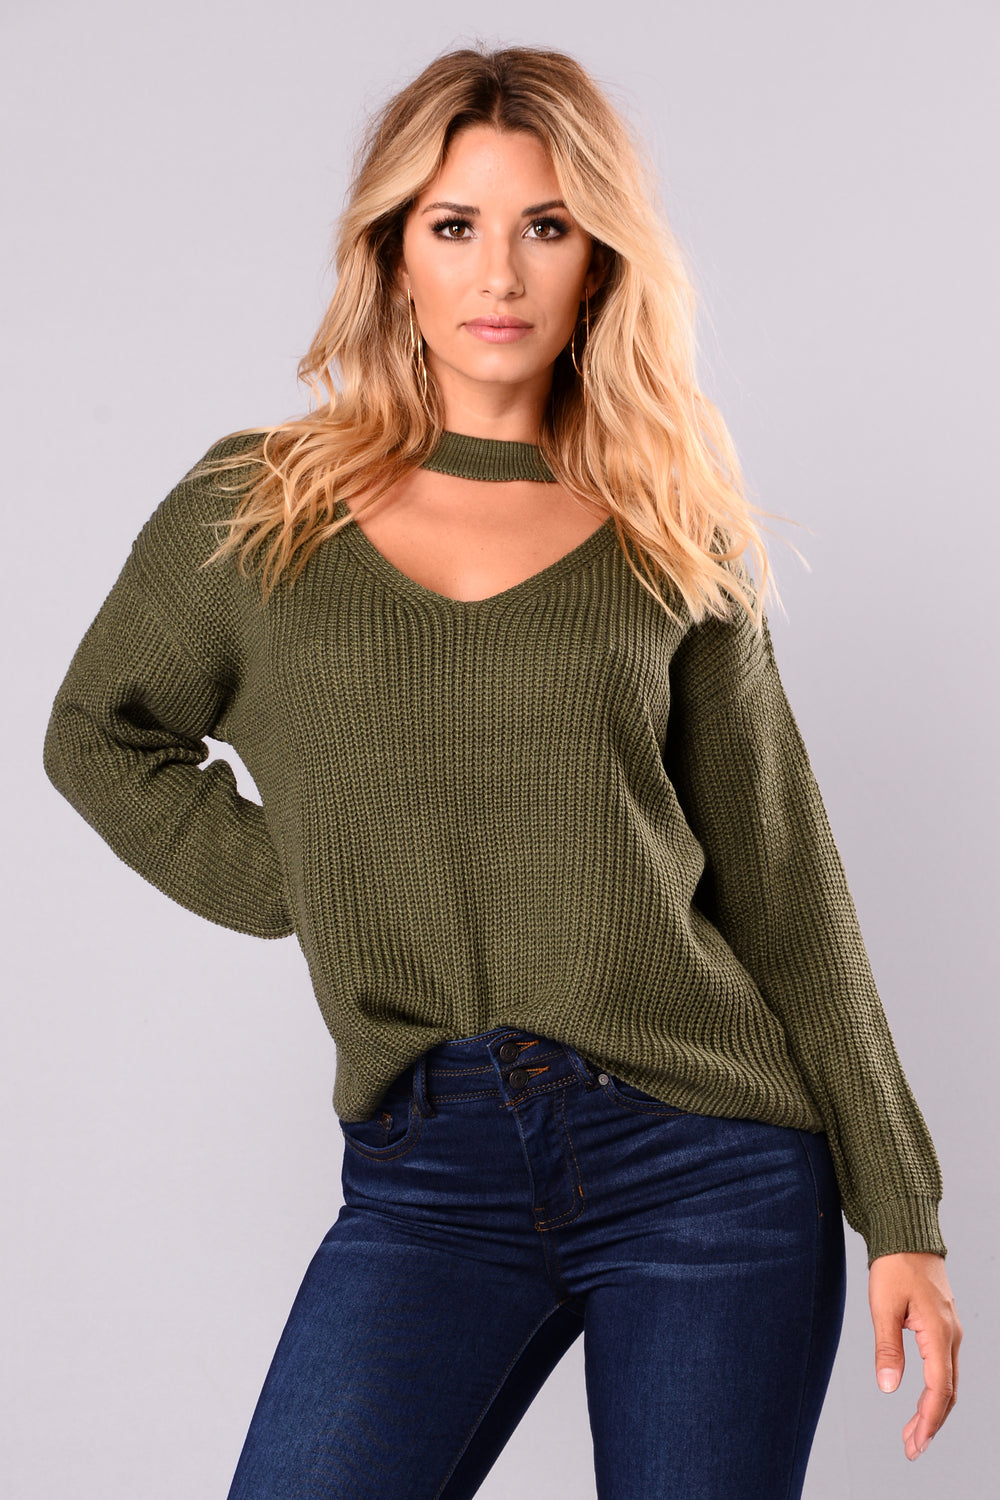 Do It Again Sweater - Olive